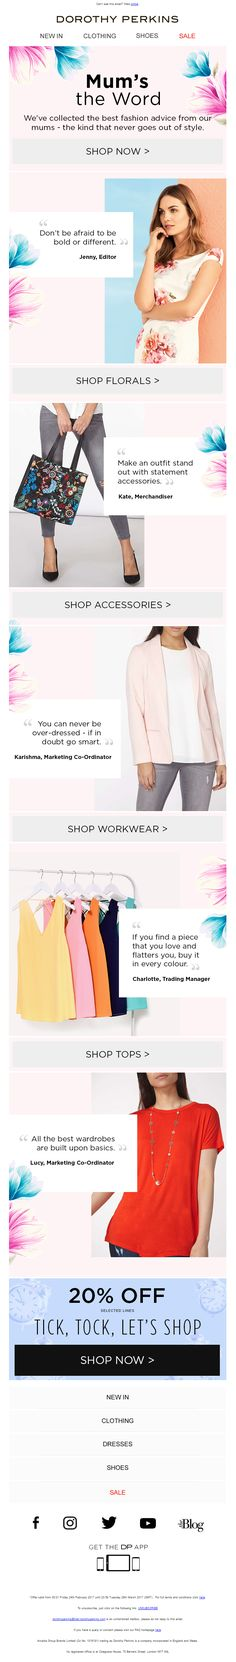 Mother's Day Email from Dorothy Perkins with social proof recommendations from stagg #EmailMarketing #Email #Marketing #MothersDay #Mothers #Day #Fashion #SocialProof #Social #Proof #Recommendations #Reviews Free Credit Repair, Make Money Online, How To Make Money, Mums The Word, Social Proof, Newsletter Design, Fashion Marketing, Email Design, Petite Outfits